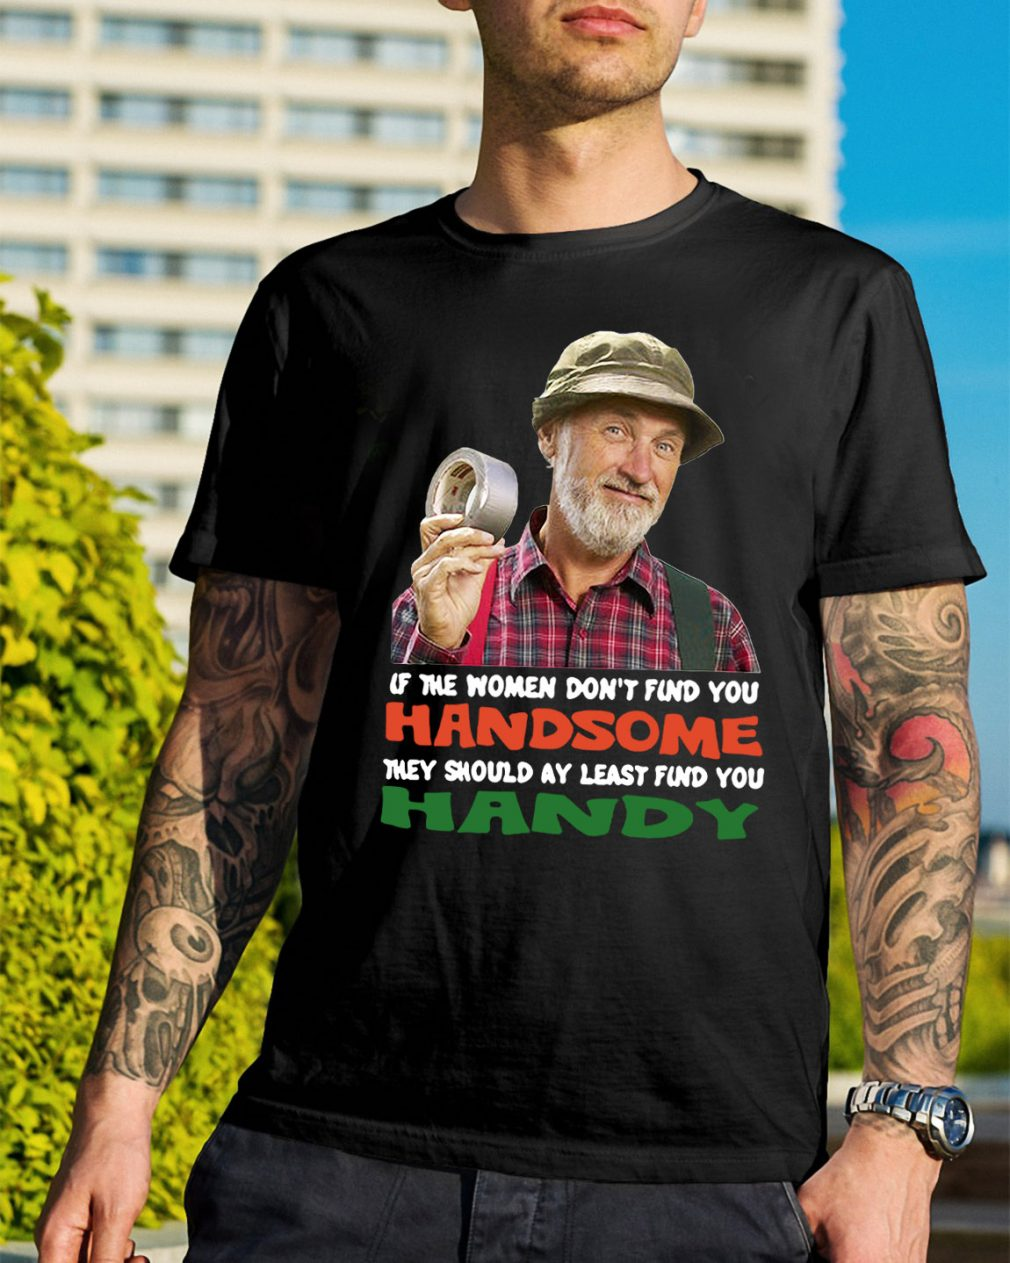 If the women don't find you Handsome they should at least find you shirt